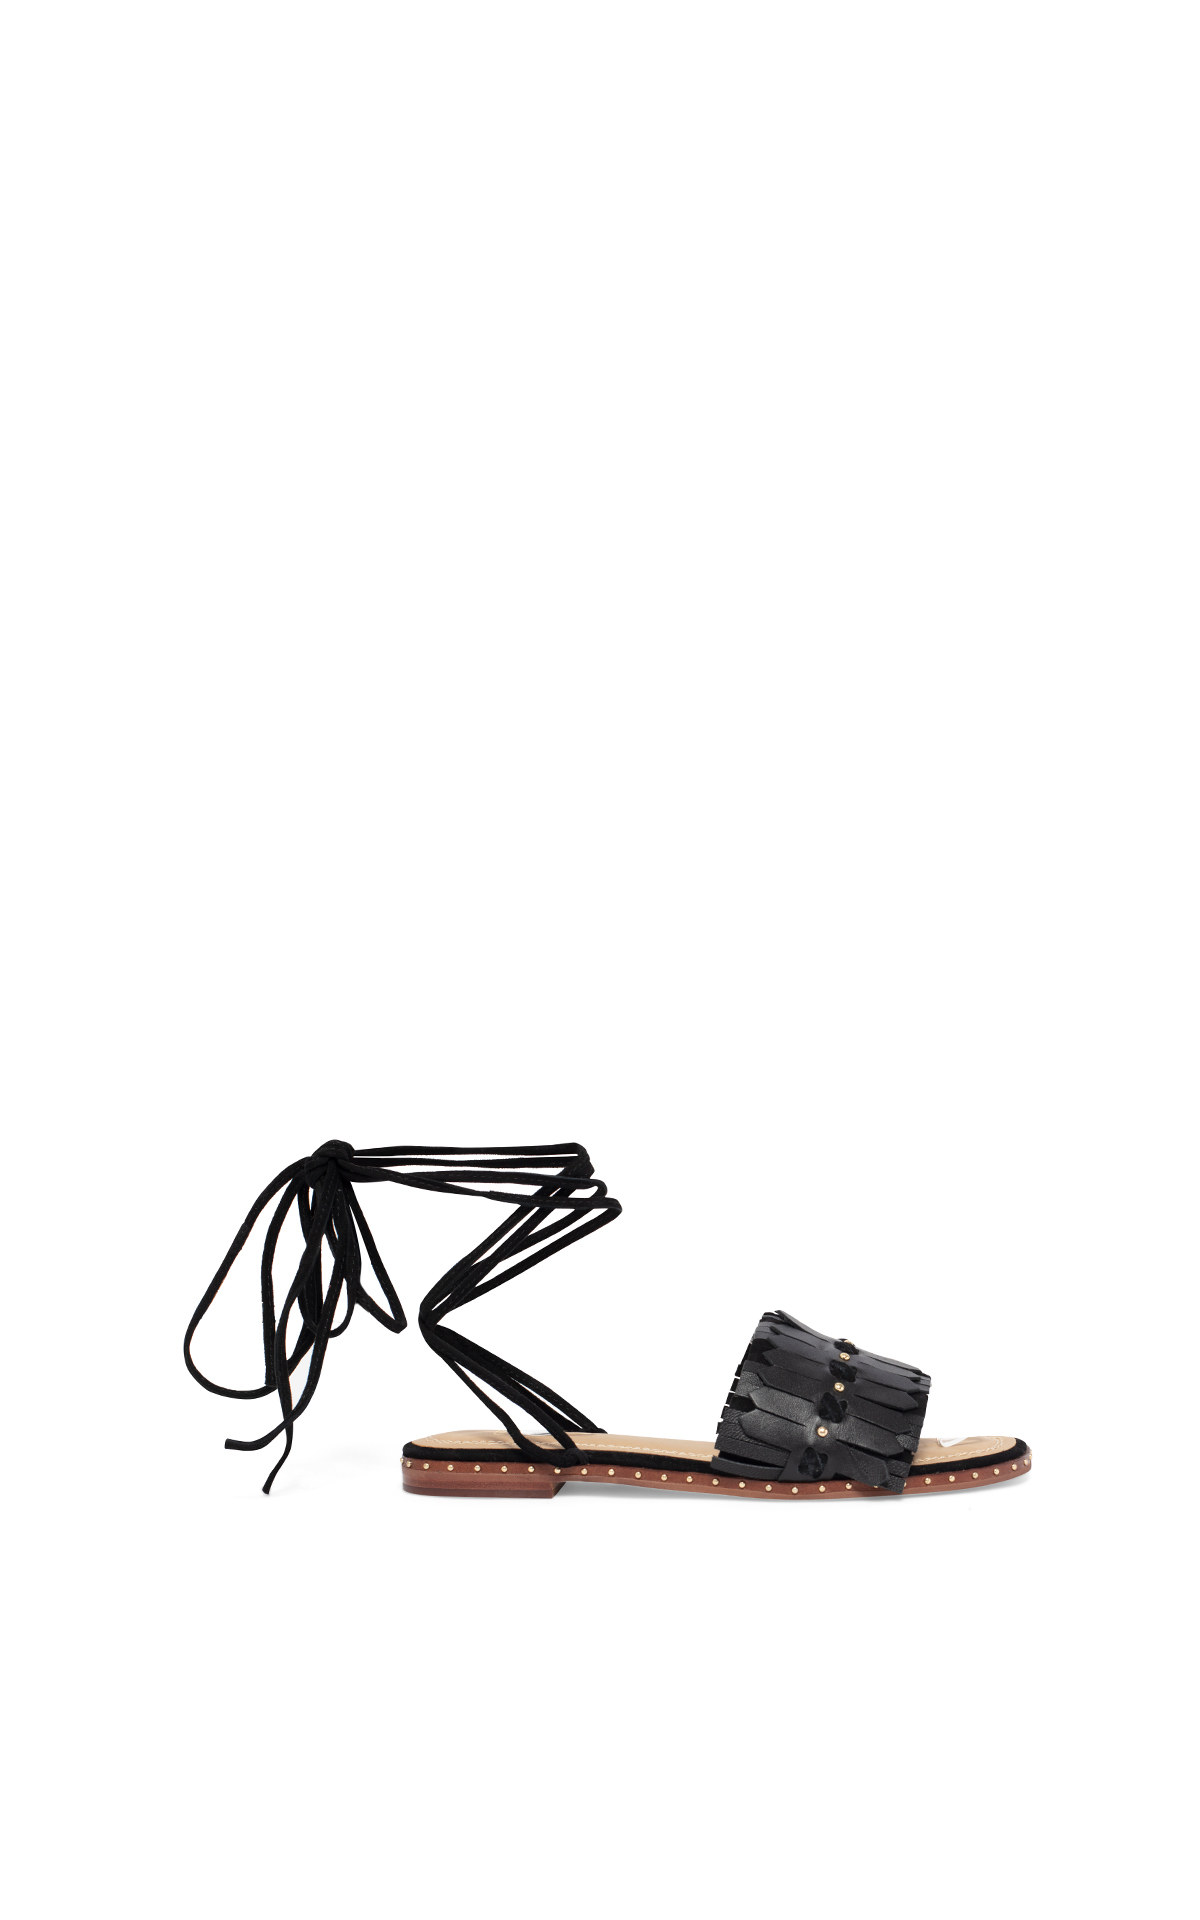 Maje Femaextra sandals*